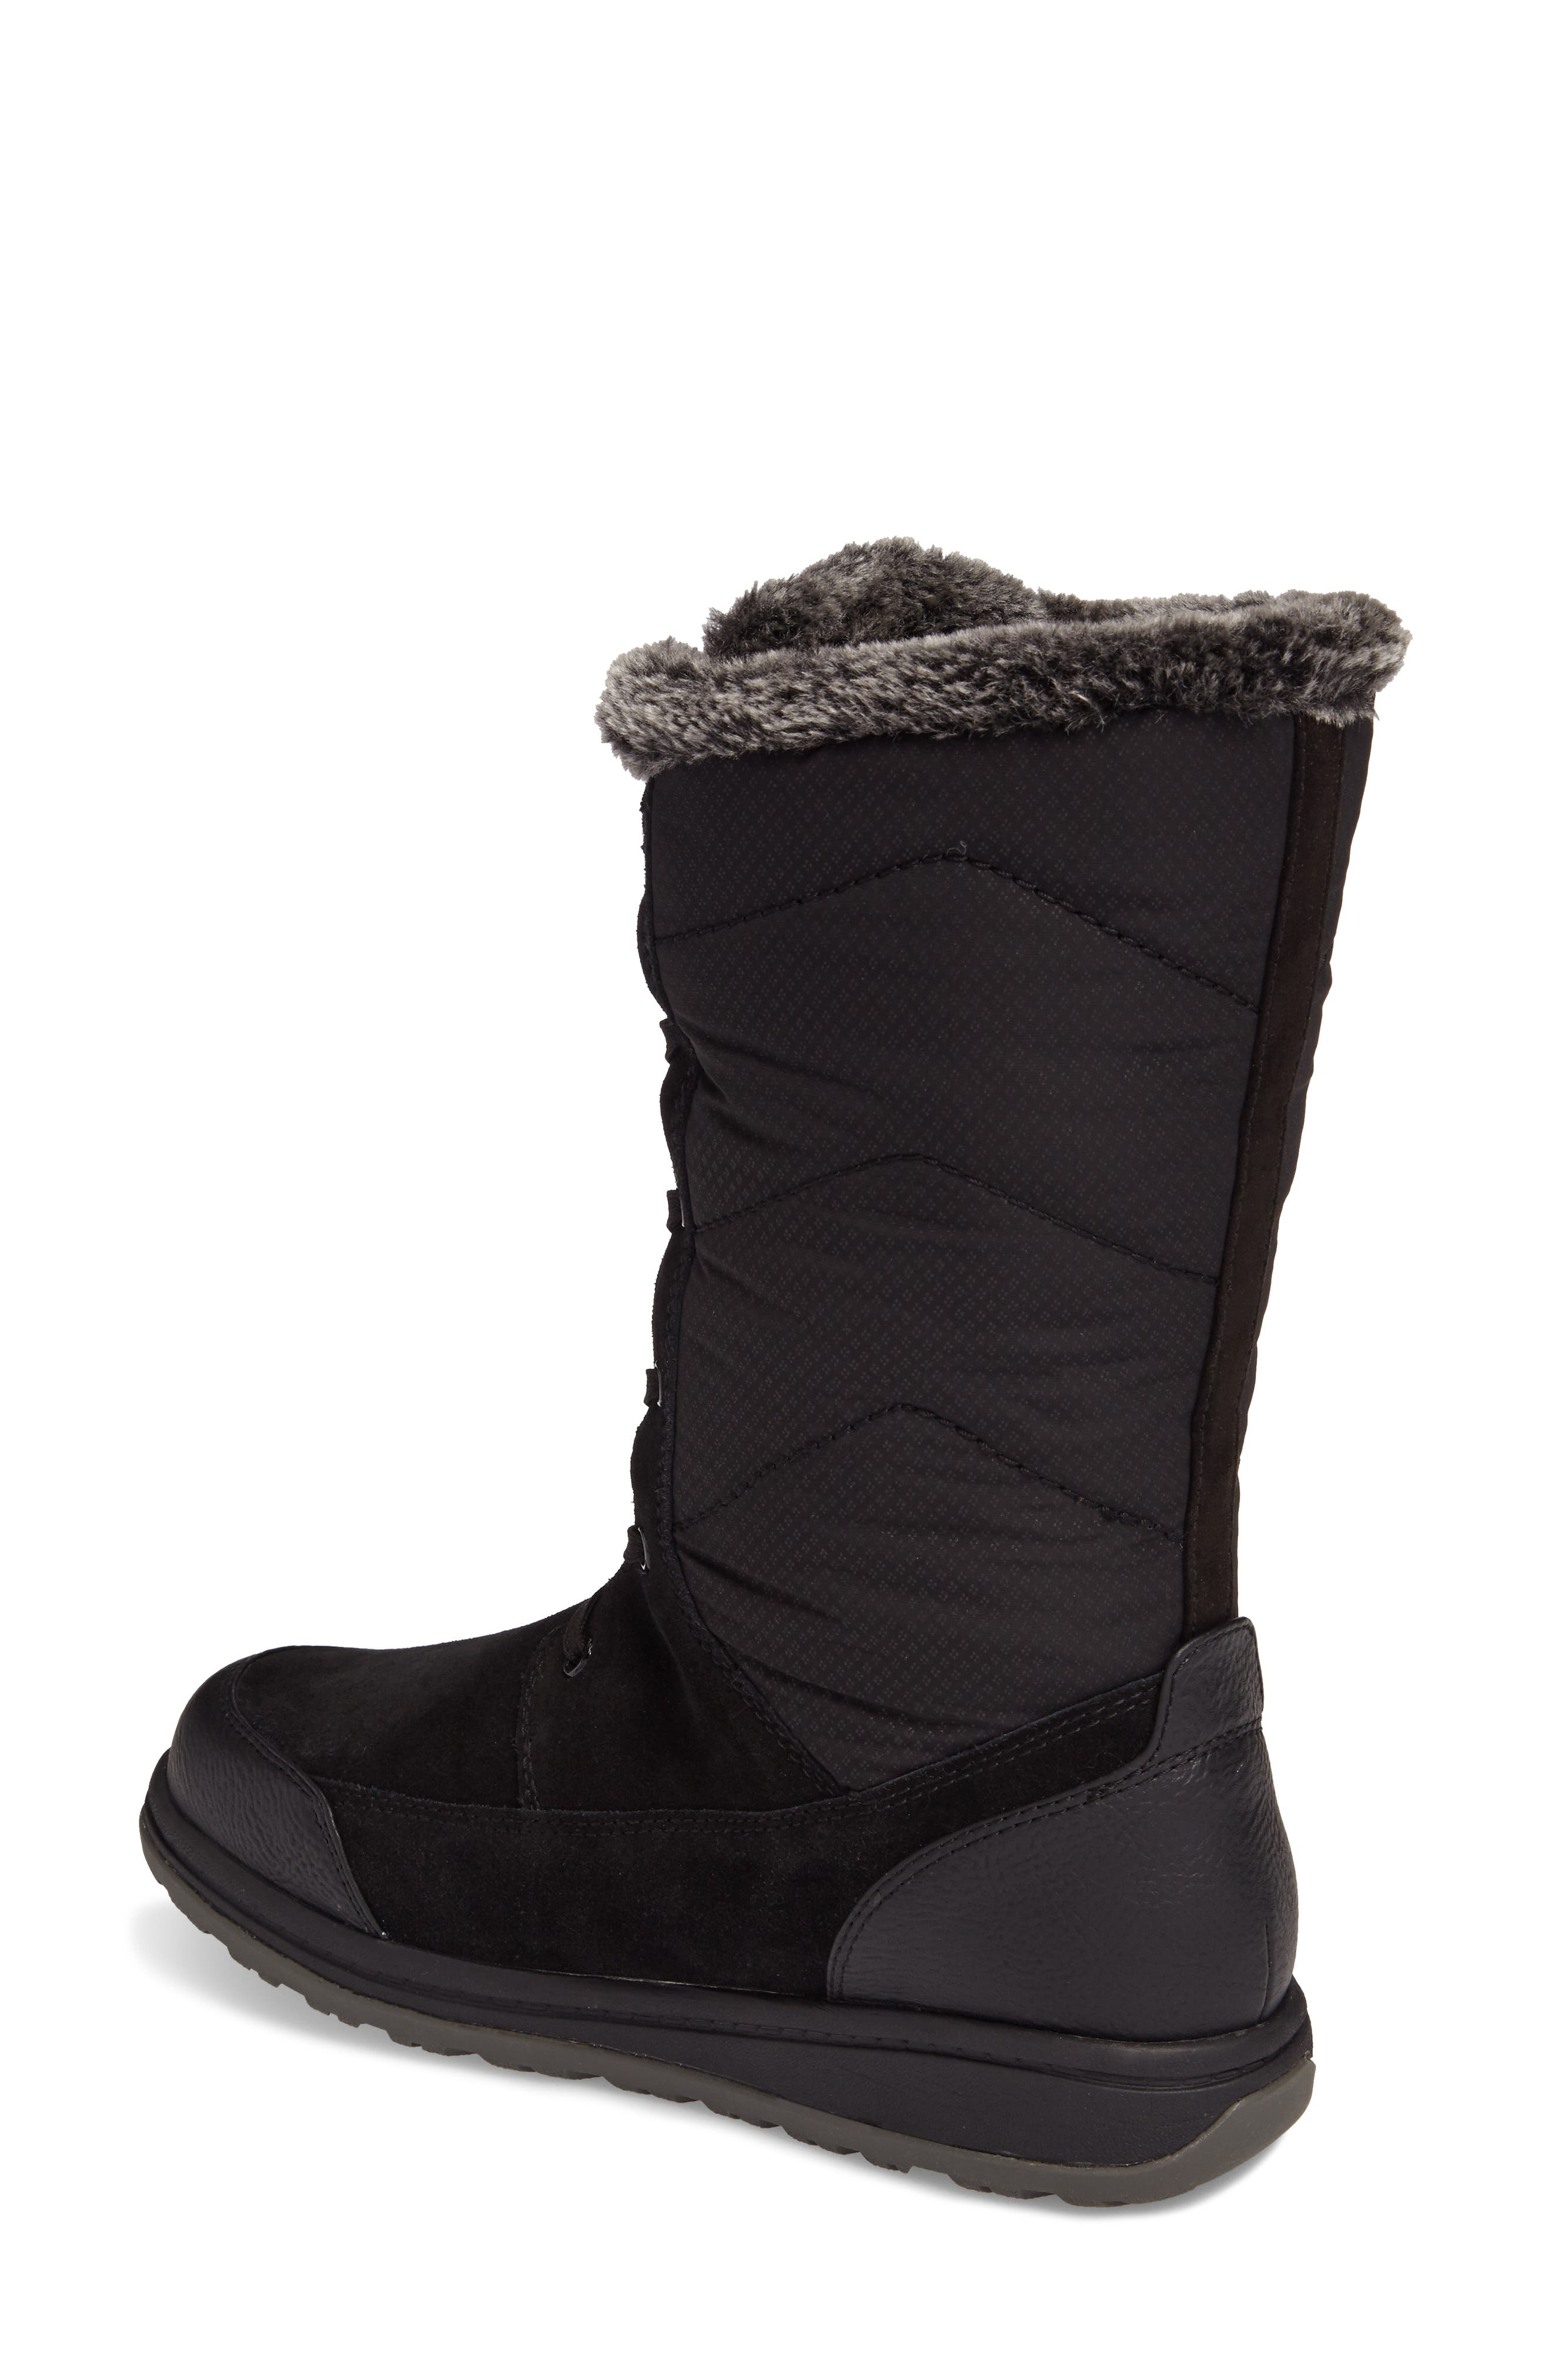 QuincyS Waterproof Boot,                             Alternate thumbnail 2, color,                             Black Fabric